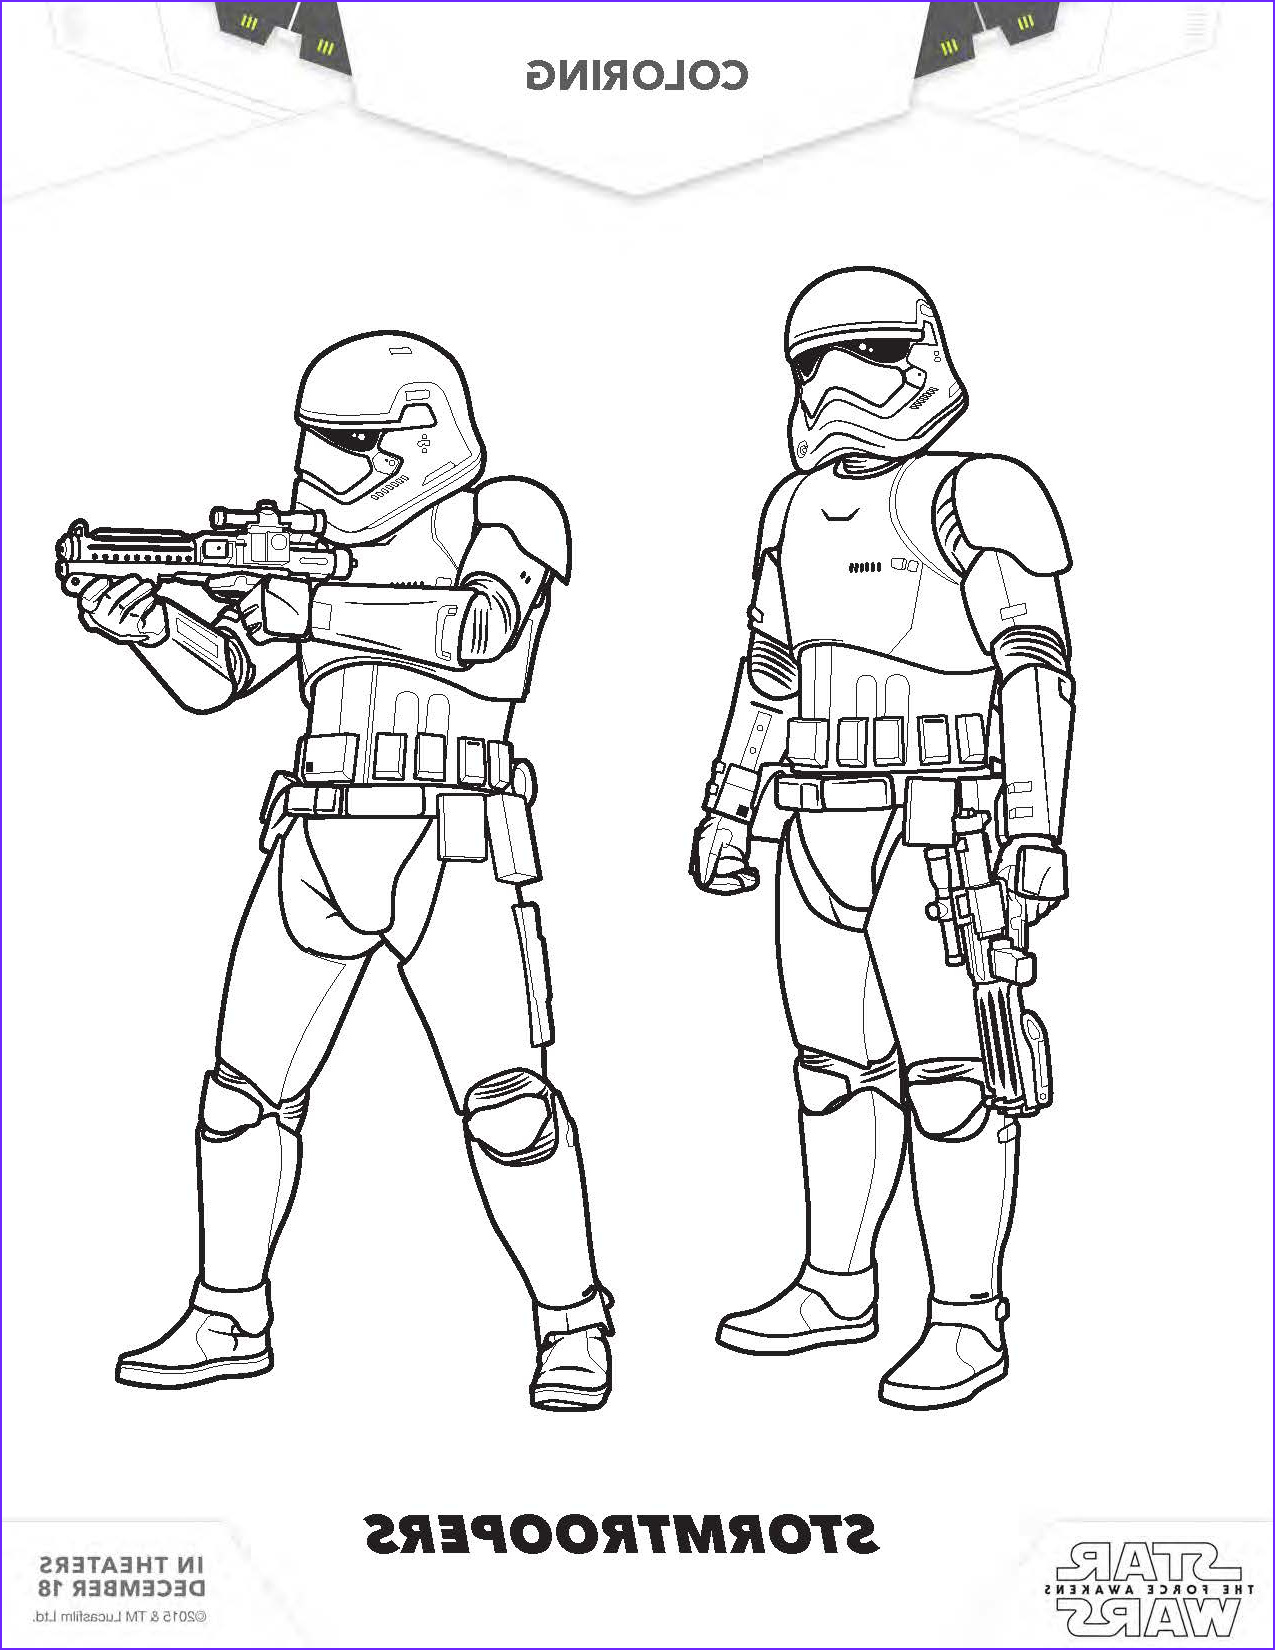 Star Wars Characters Coloring Pages Beautiful Photography Star Wars Coloring Pages the force Awakens Coloring Pages